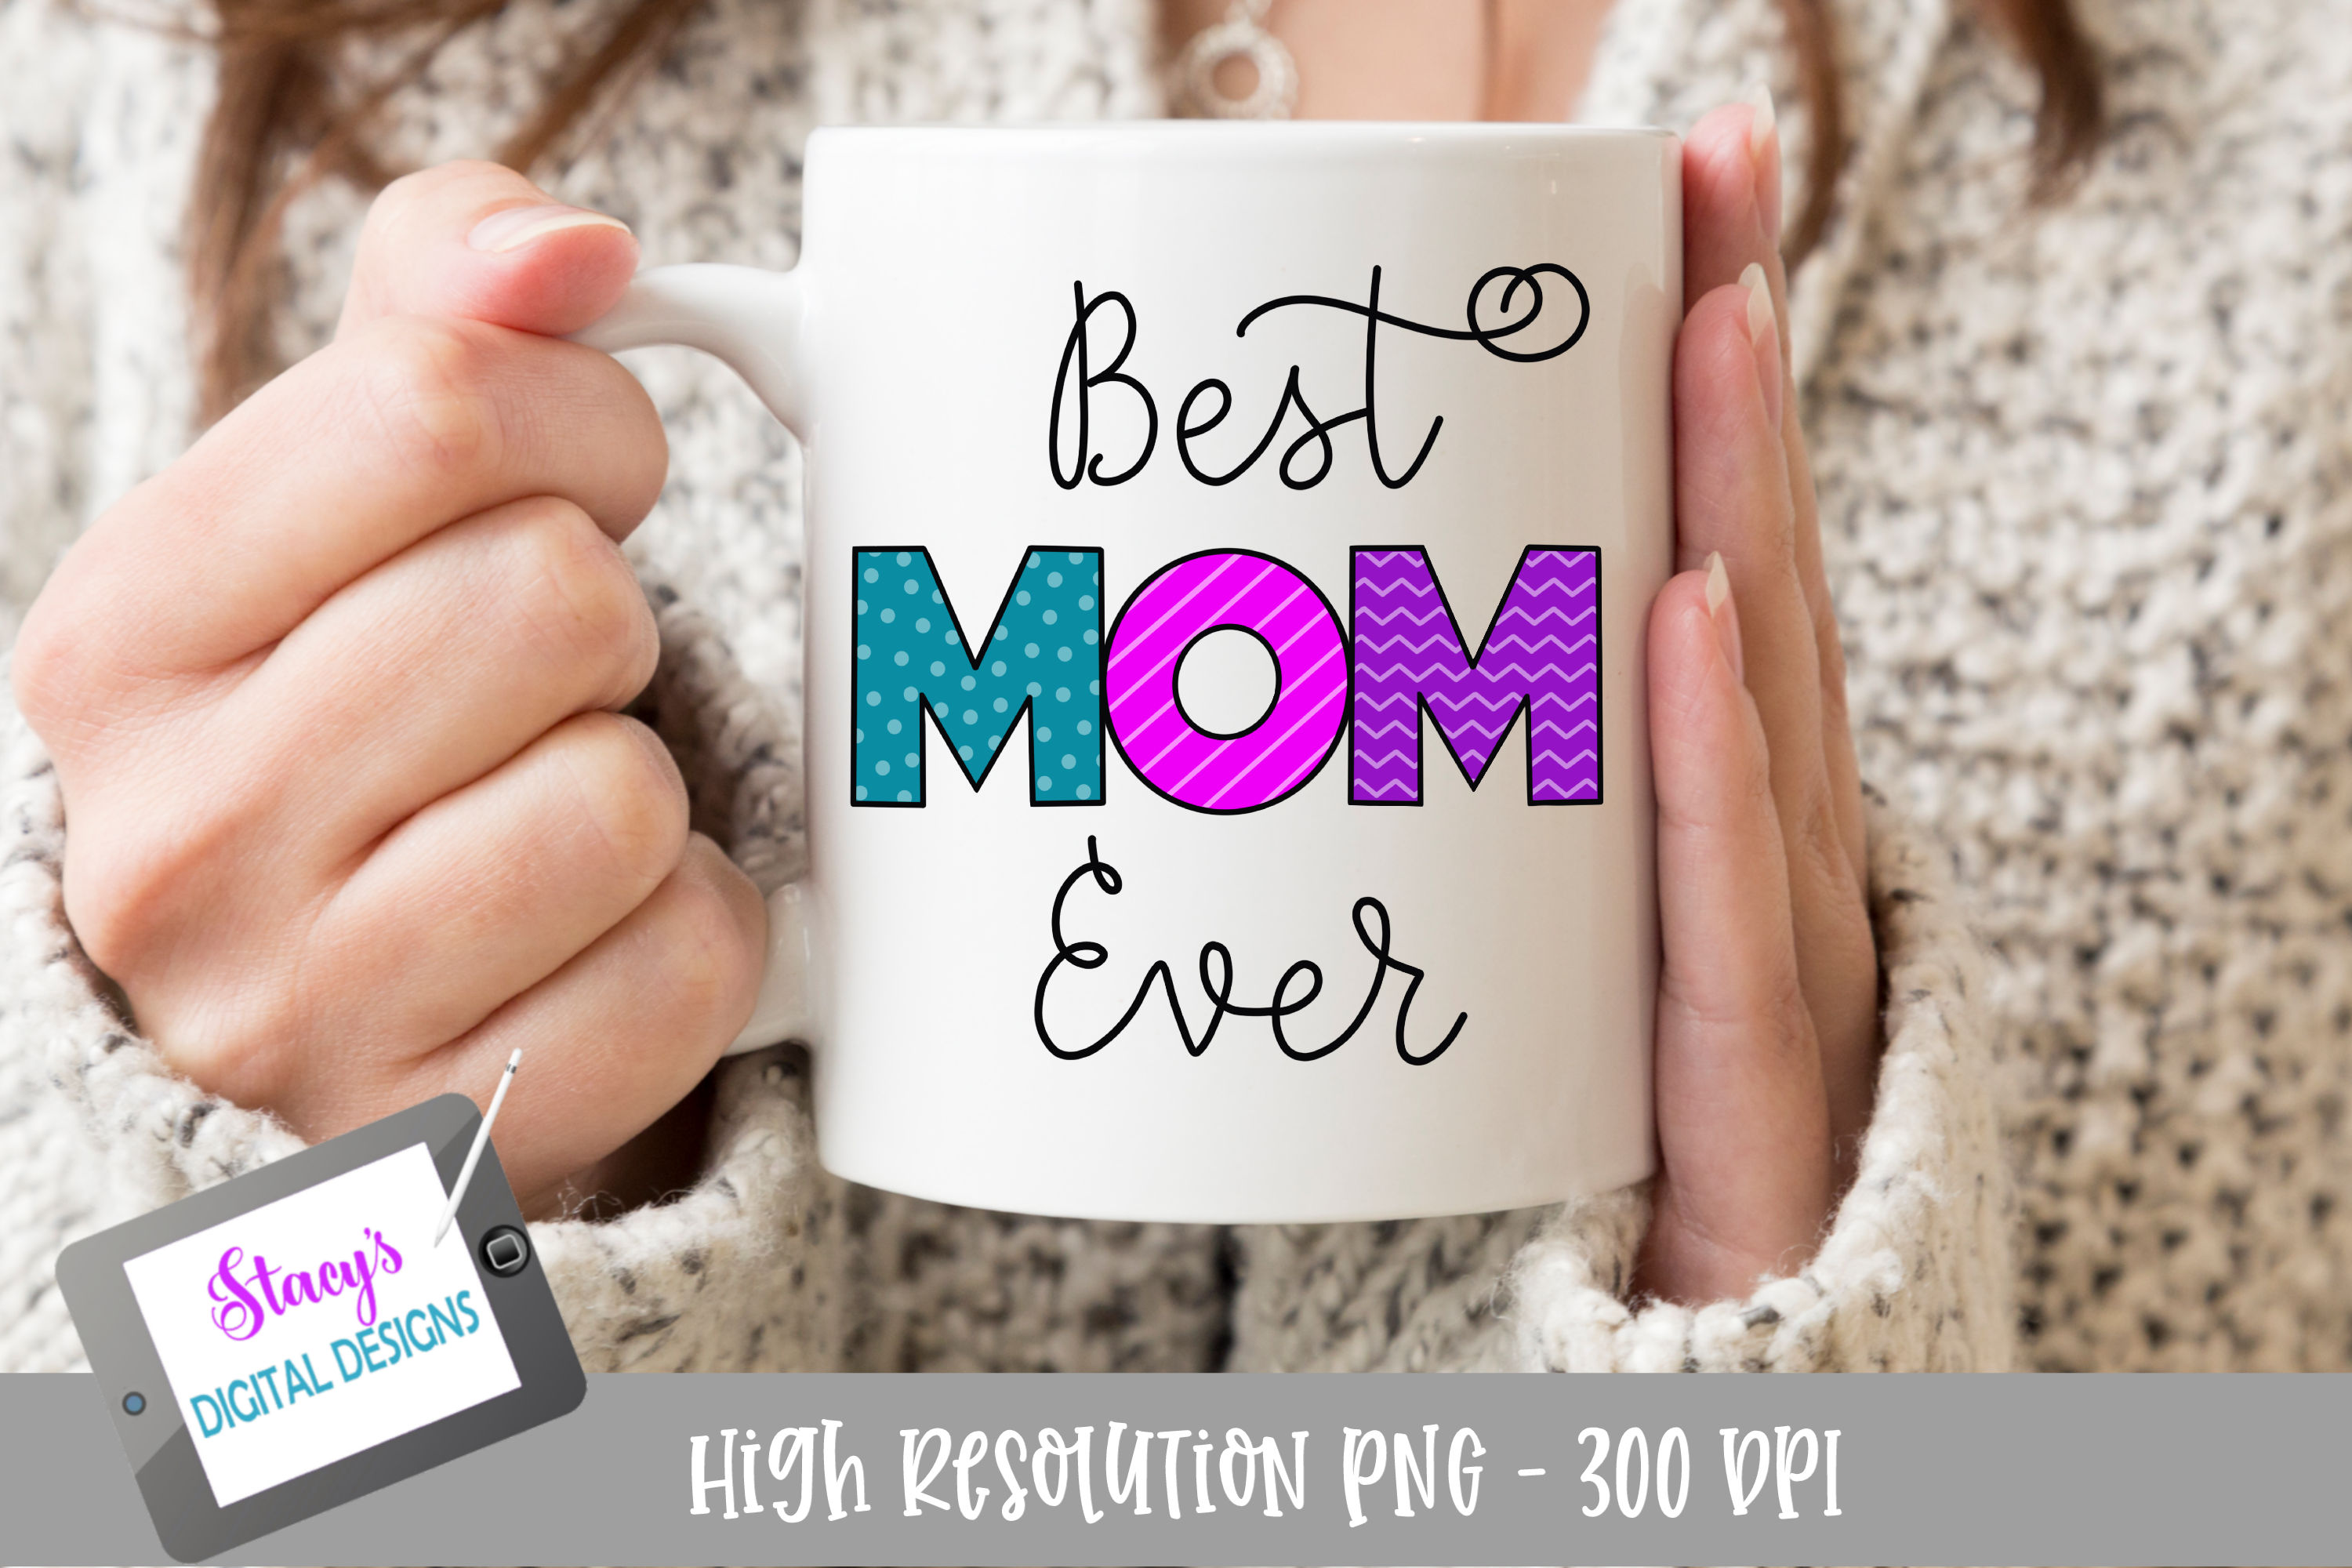 Best Mom Ever PNG - Sublimation Design example image 1